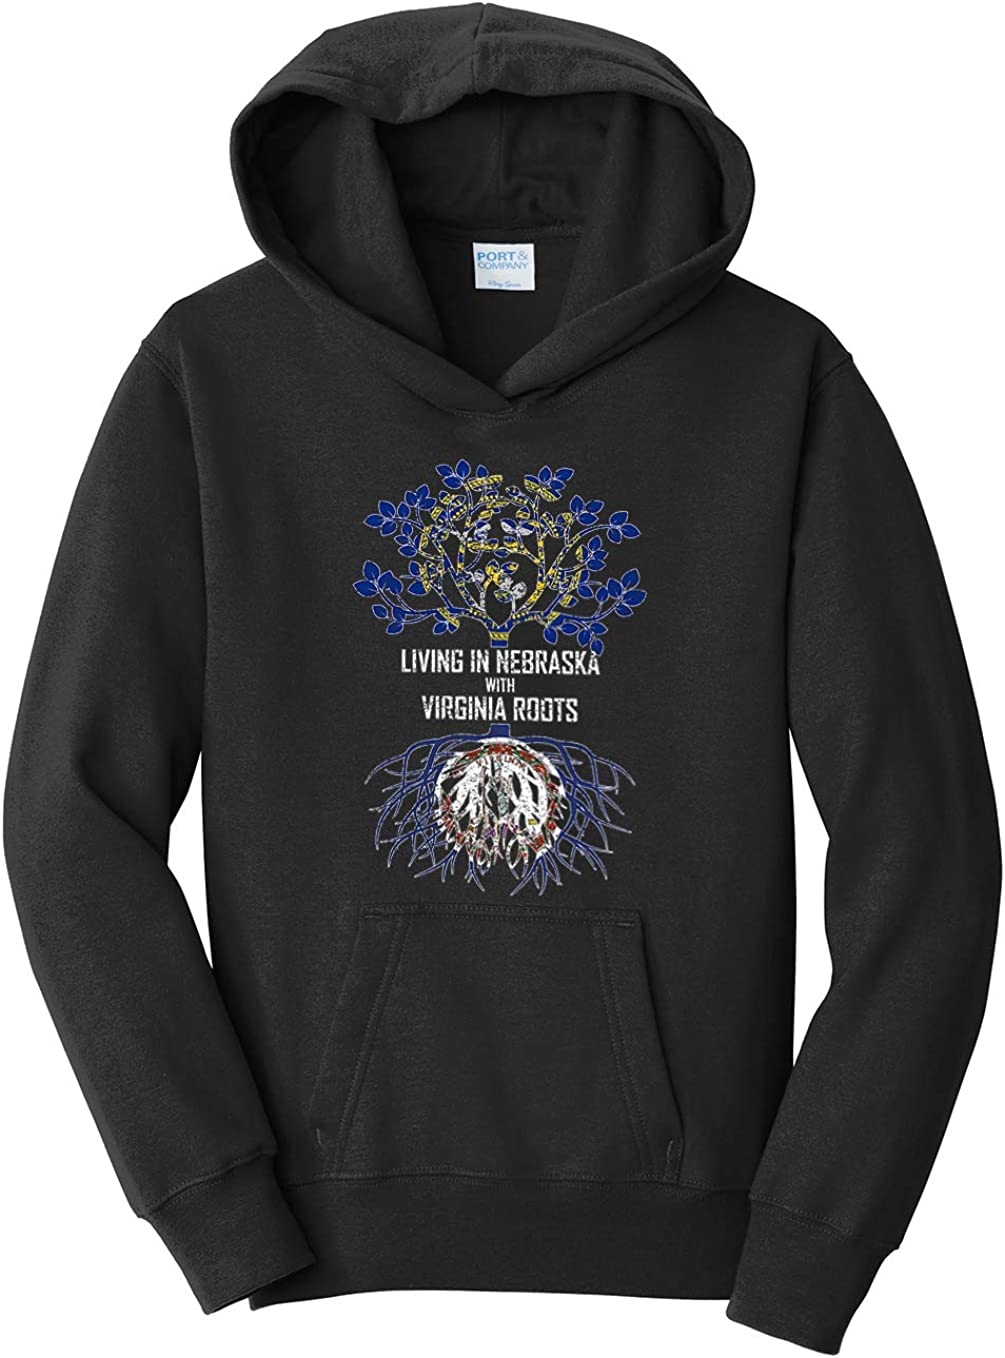 Tenacitee Girls Living in Nebraska with Virginia Roots Hooded Sweatshirt